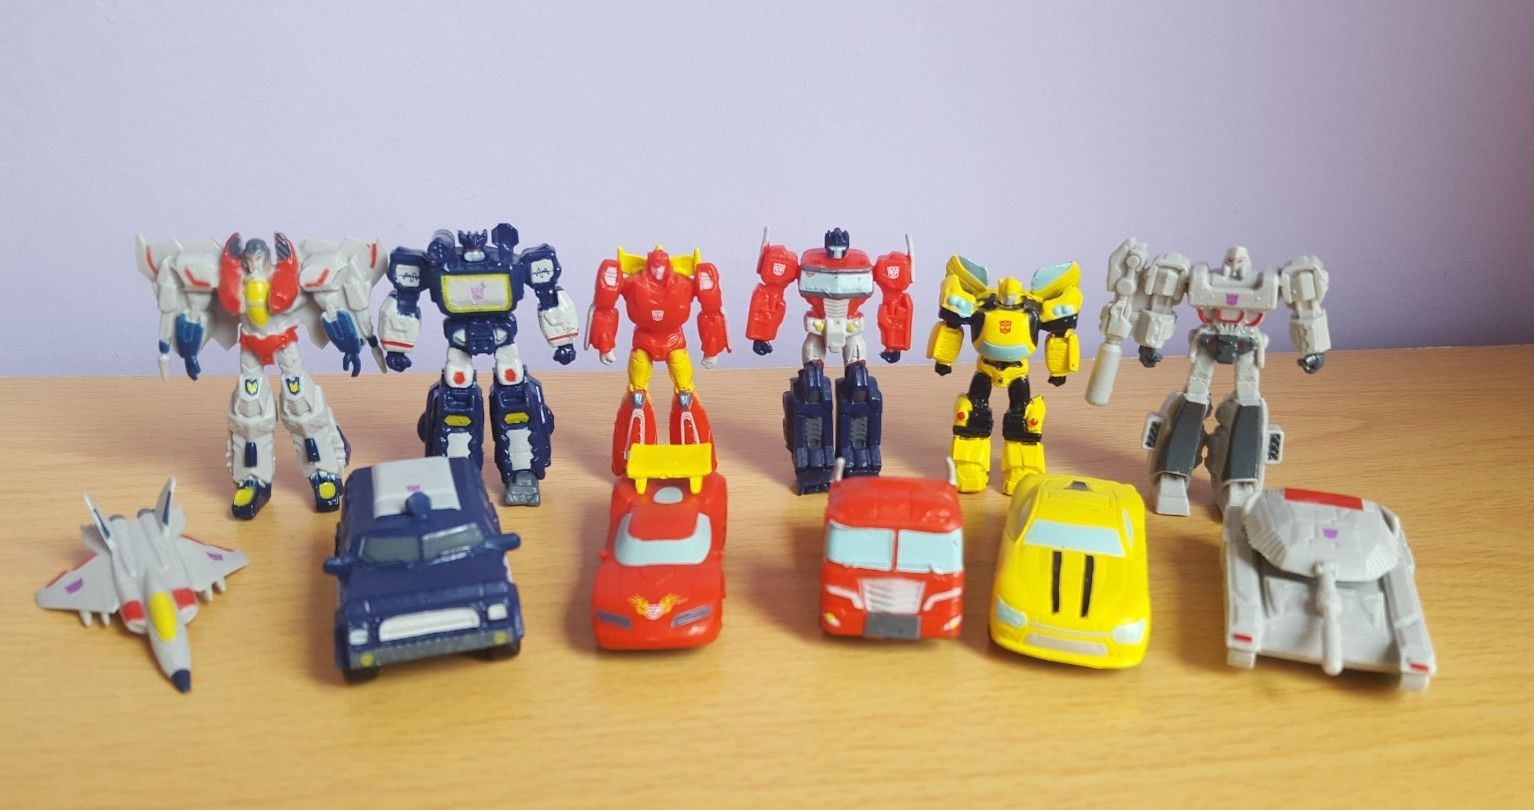 Transformers News: Another Look at Transformers Busy Book Figures